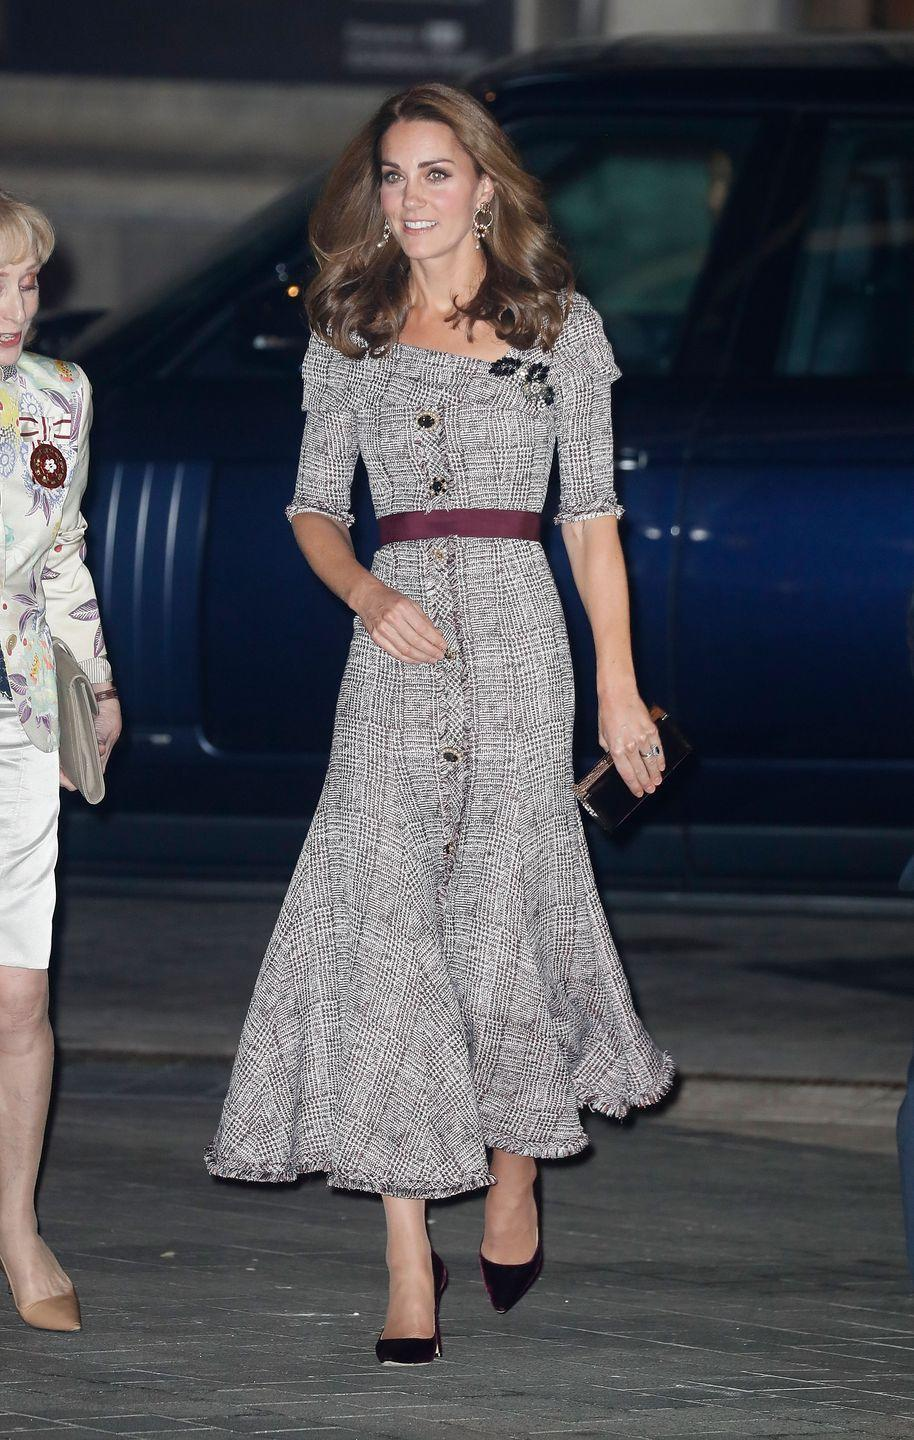 """<p>Kate arrived at the opening of the V&A museum's new photography center wearing a gray plaid dress by Erdem. <a href=""""https://www.townandcountrymag.com/society/tradition/a23695614/kate-middleton-victoria-albert-museum-photography-centre-opening/"""" rel=""""nofollow noopener"""" target=""""_blank"""" data-ylk=""""slk:She paired the look with maroon heels and a boxy clutch."""" class=""""link rapid-noclick-resp"""">She paired the look with maroon heels and a boxy clutch.</a></p>"""